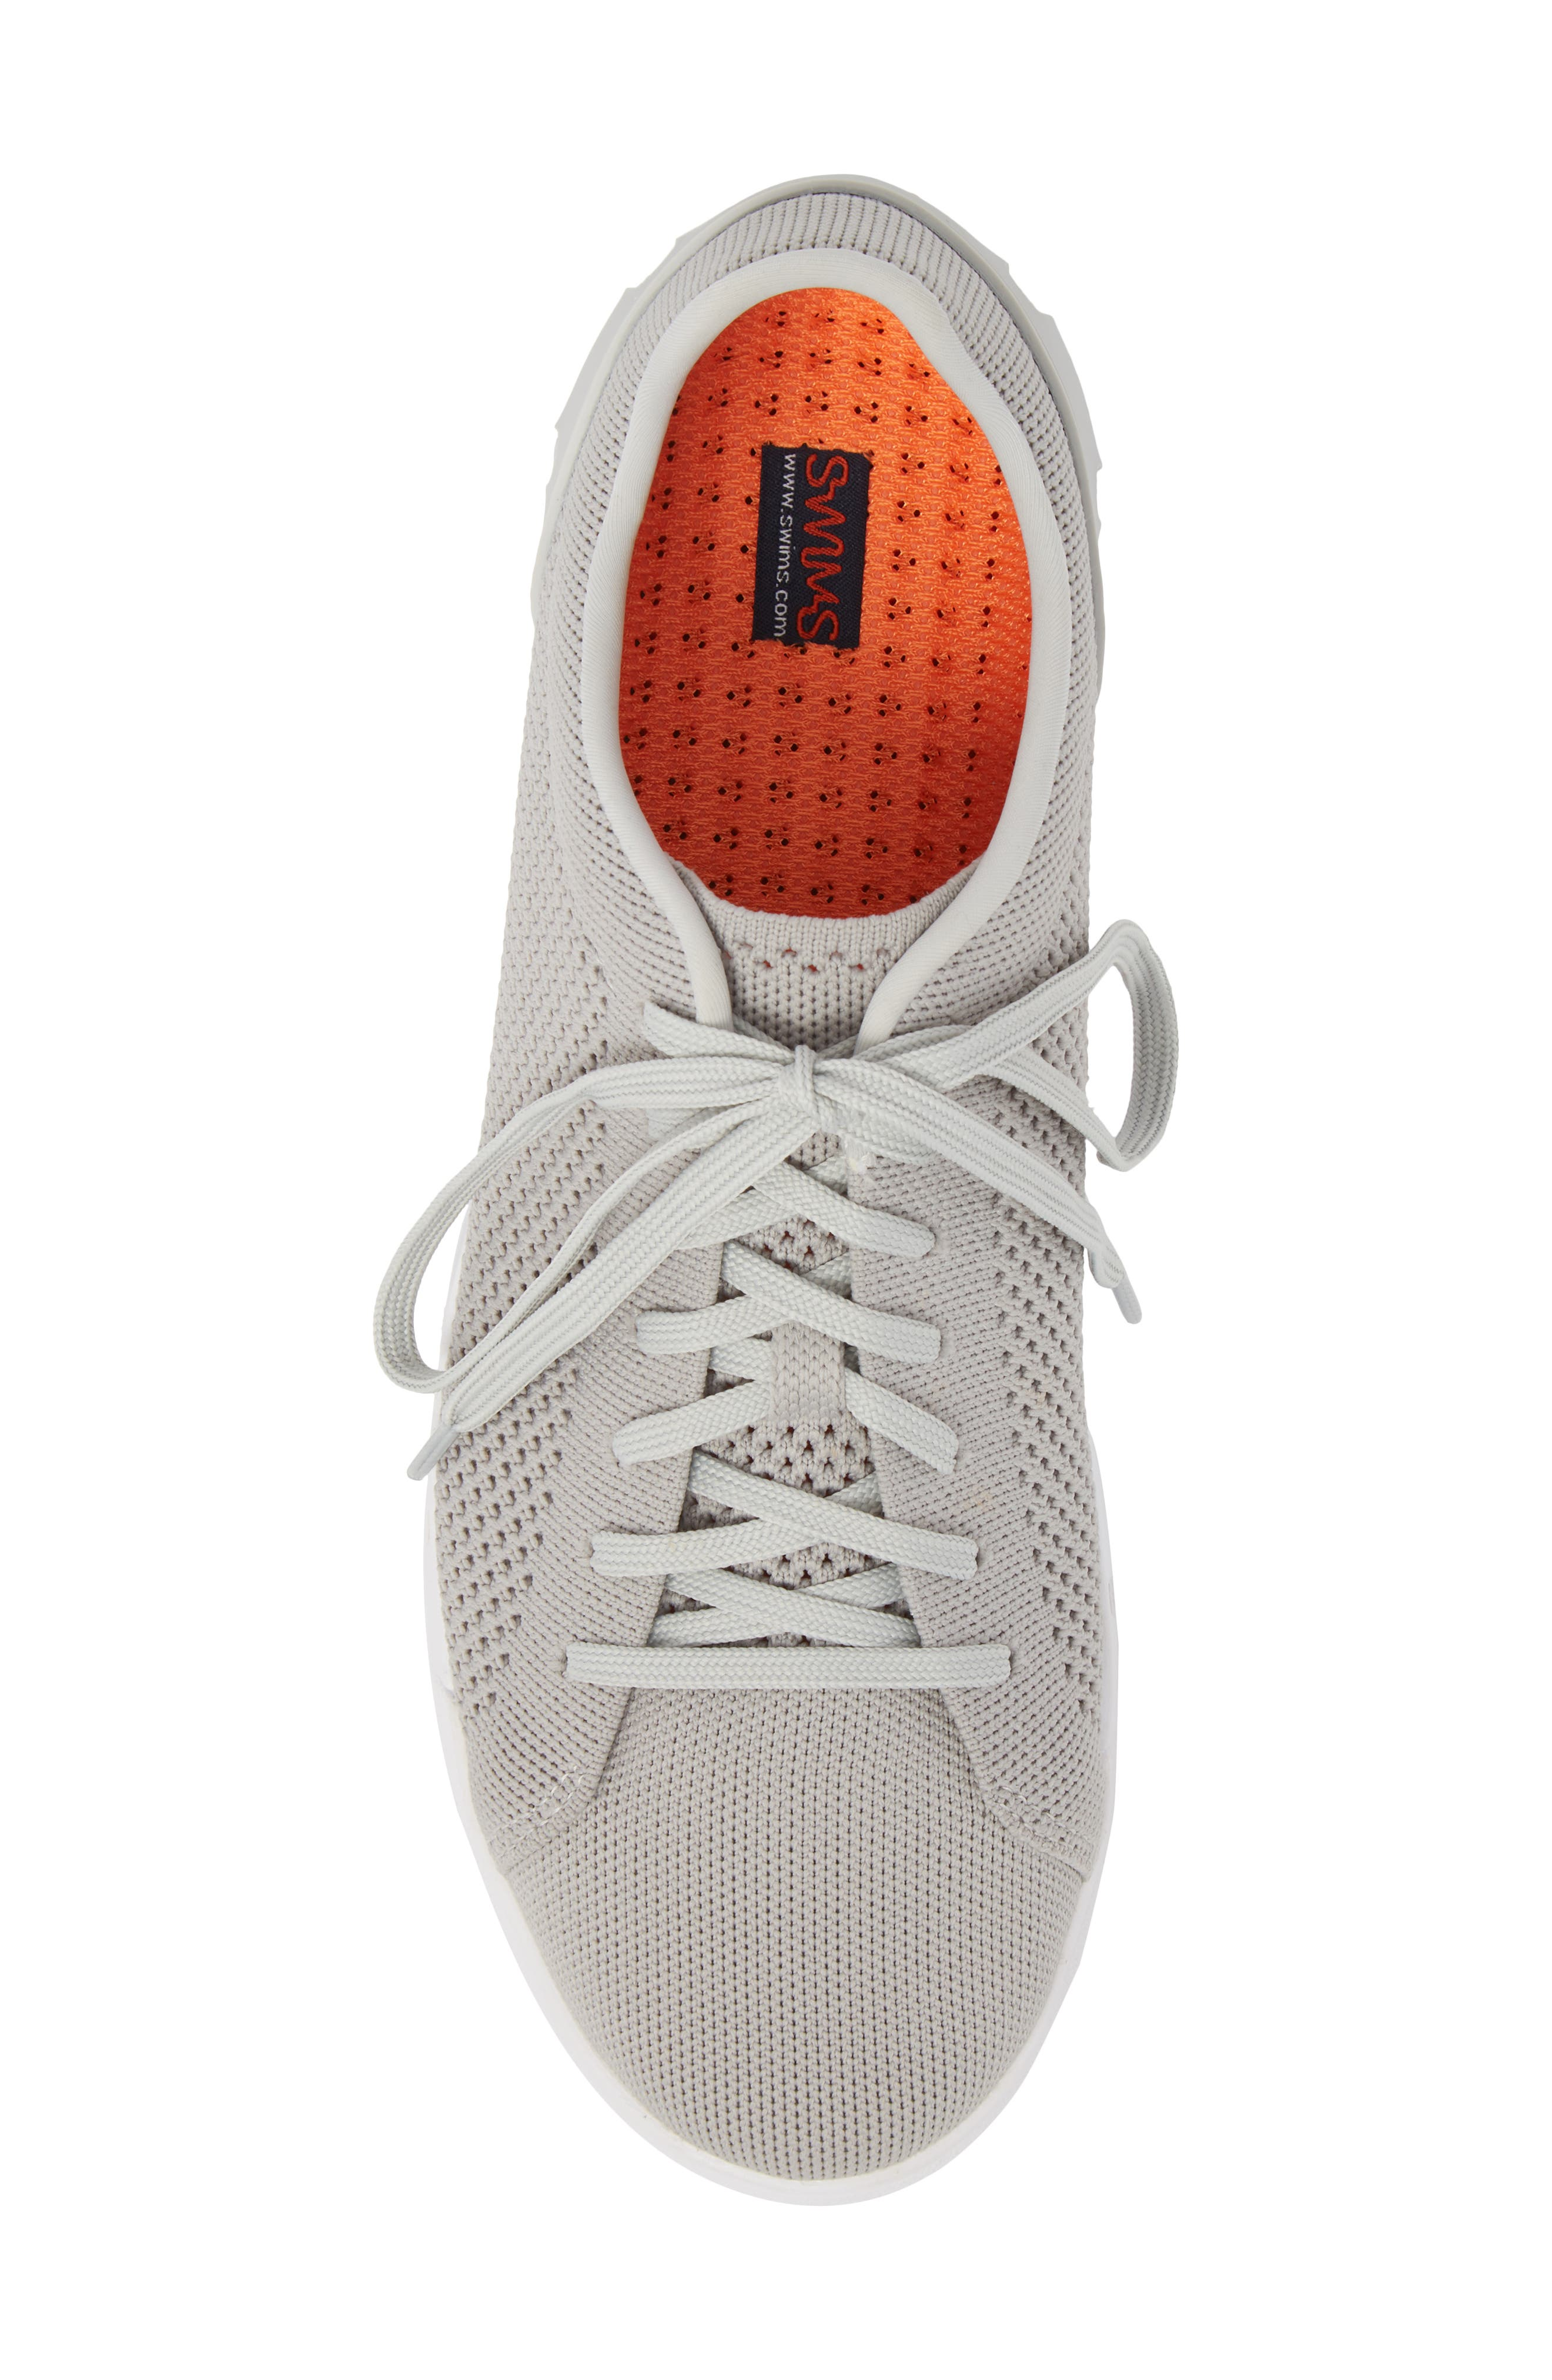 Breeze Tennis Washable Knit Sneaker,                             Alternate thumbnail 5, color,                             Light Grey/ White Fabric